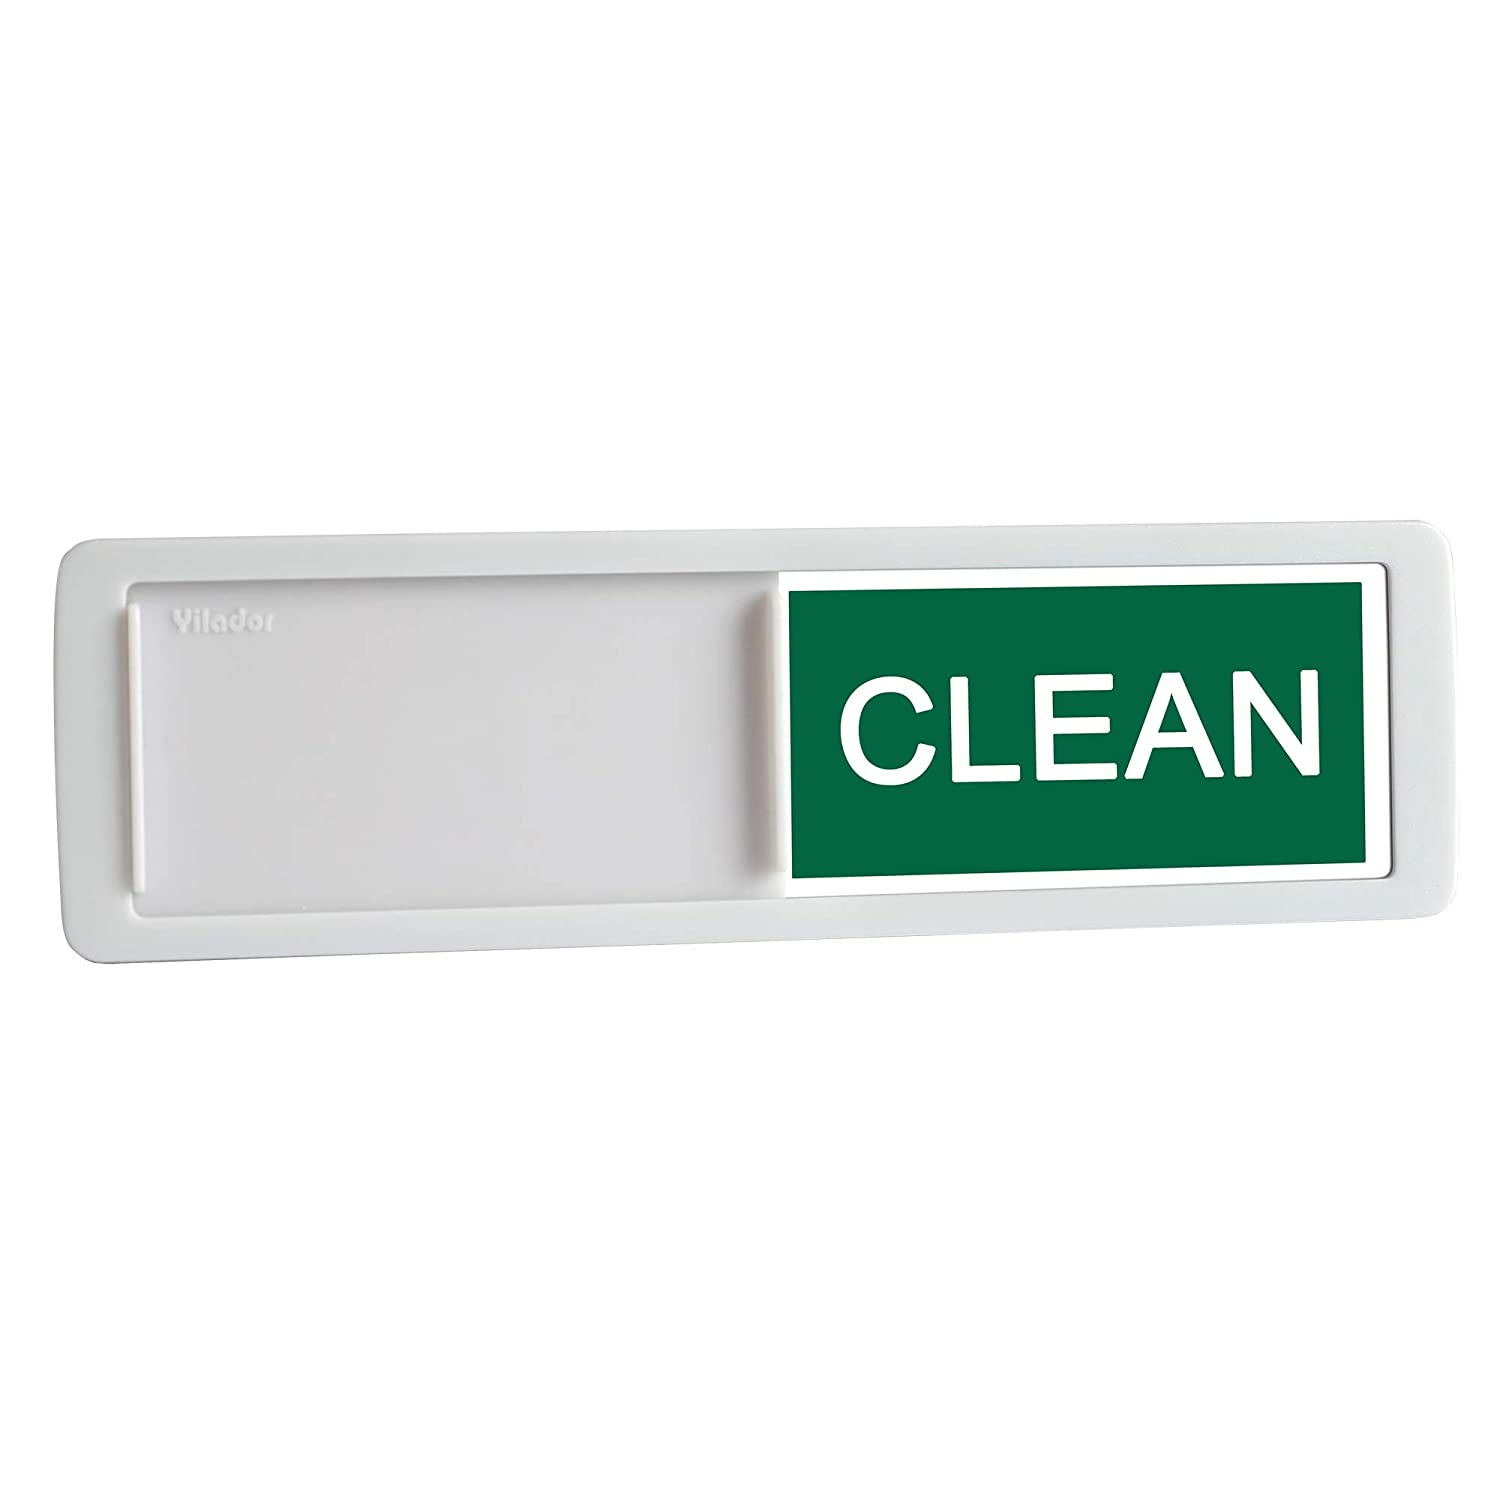 Nano Shield Dishwasher Magnet Clean Dirty Sign, New Design Decorative Dishwasheer Indicator Slide Reminder with Sticky Tab Adhesion, Slide Signs Cool Kitchen Gadgets - White